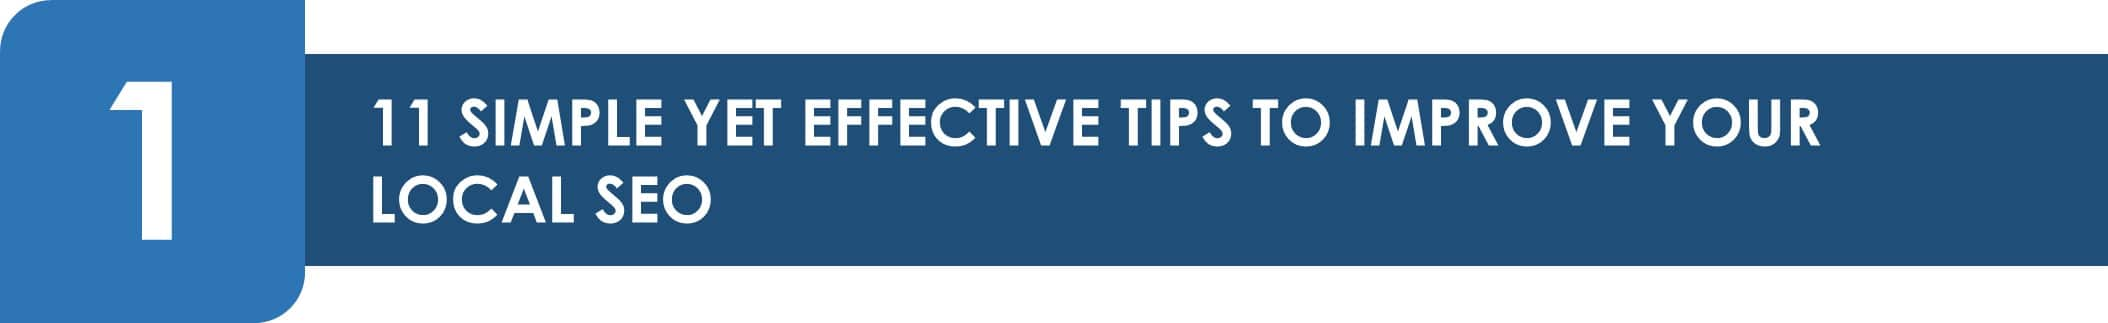 11_Simple_Yet_Effective_Tips_to_Improve_your_Local_SEO